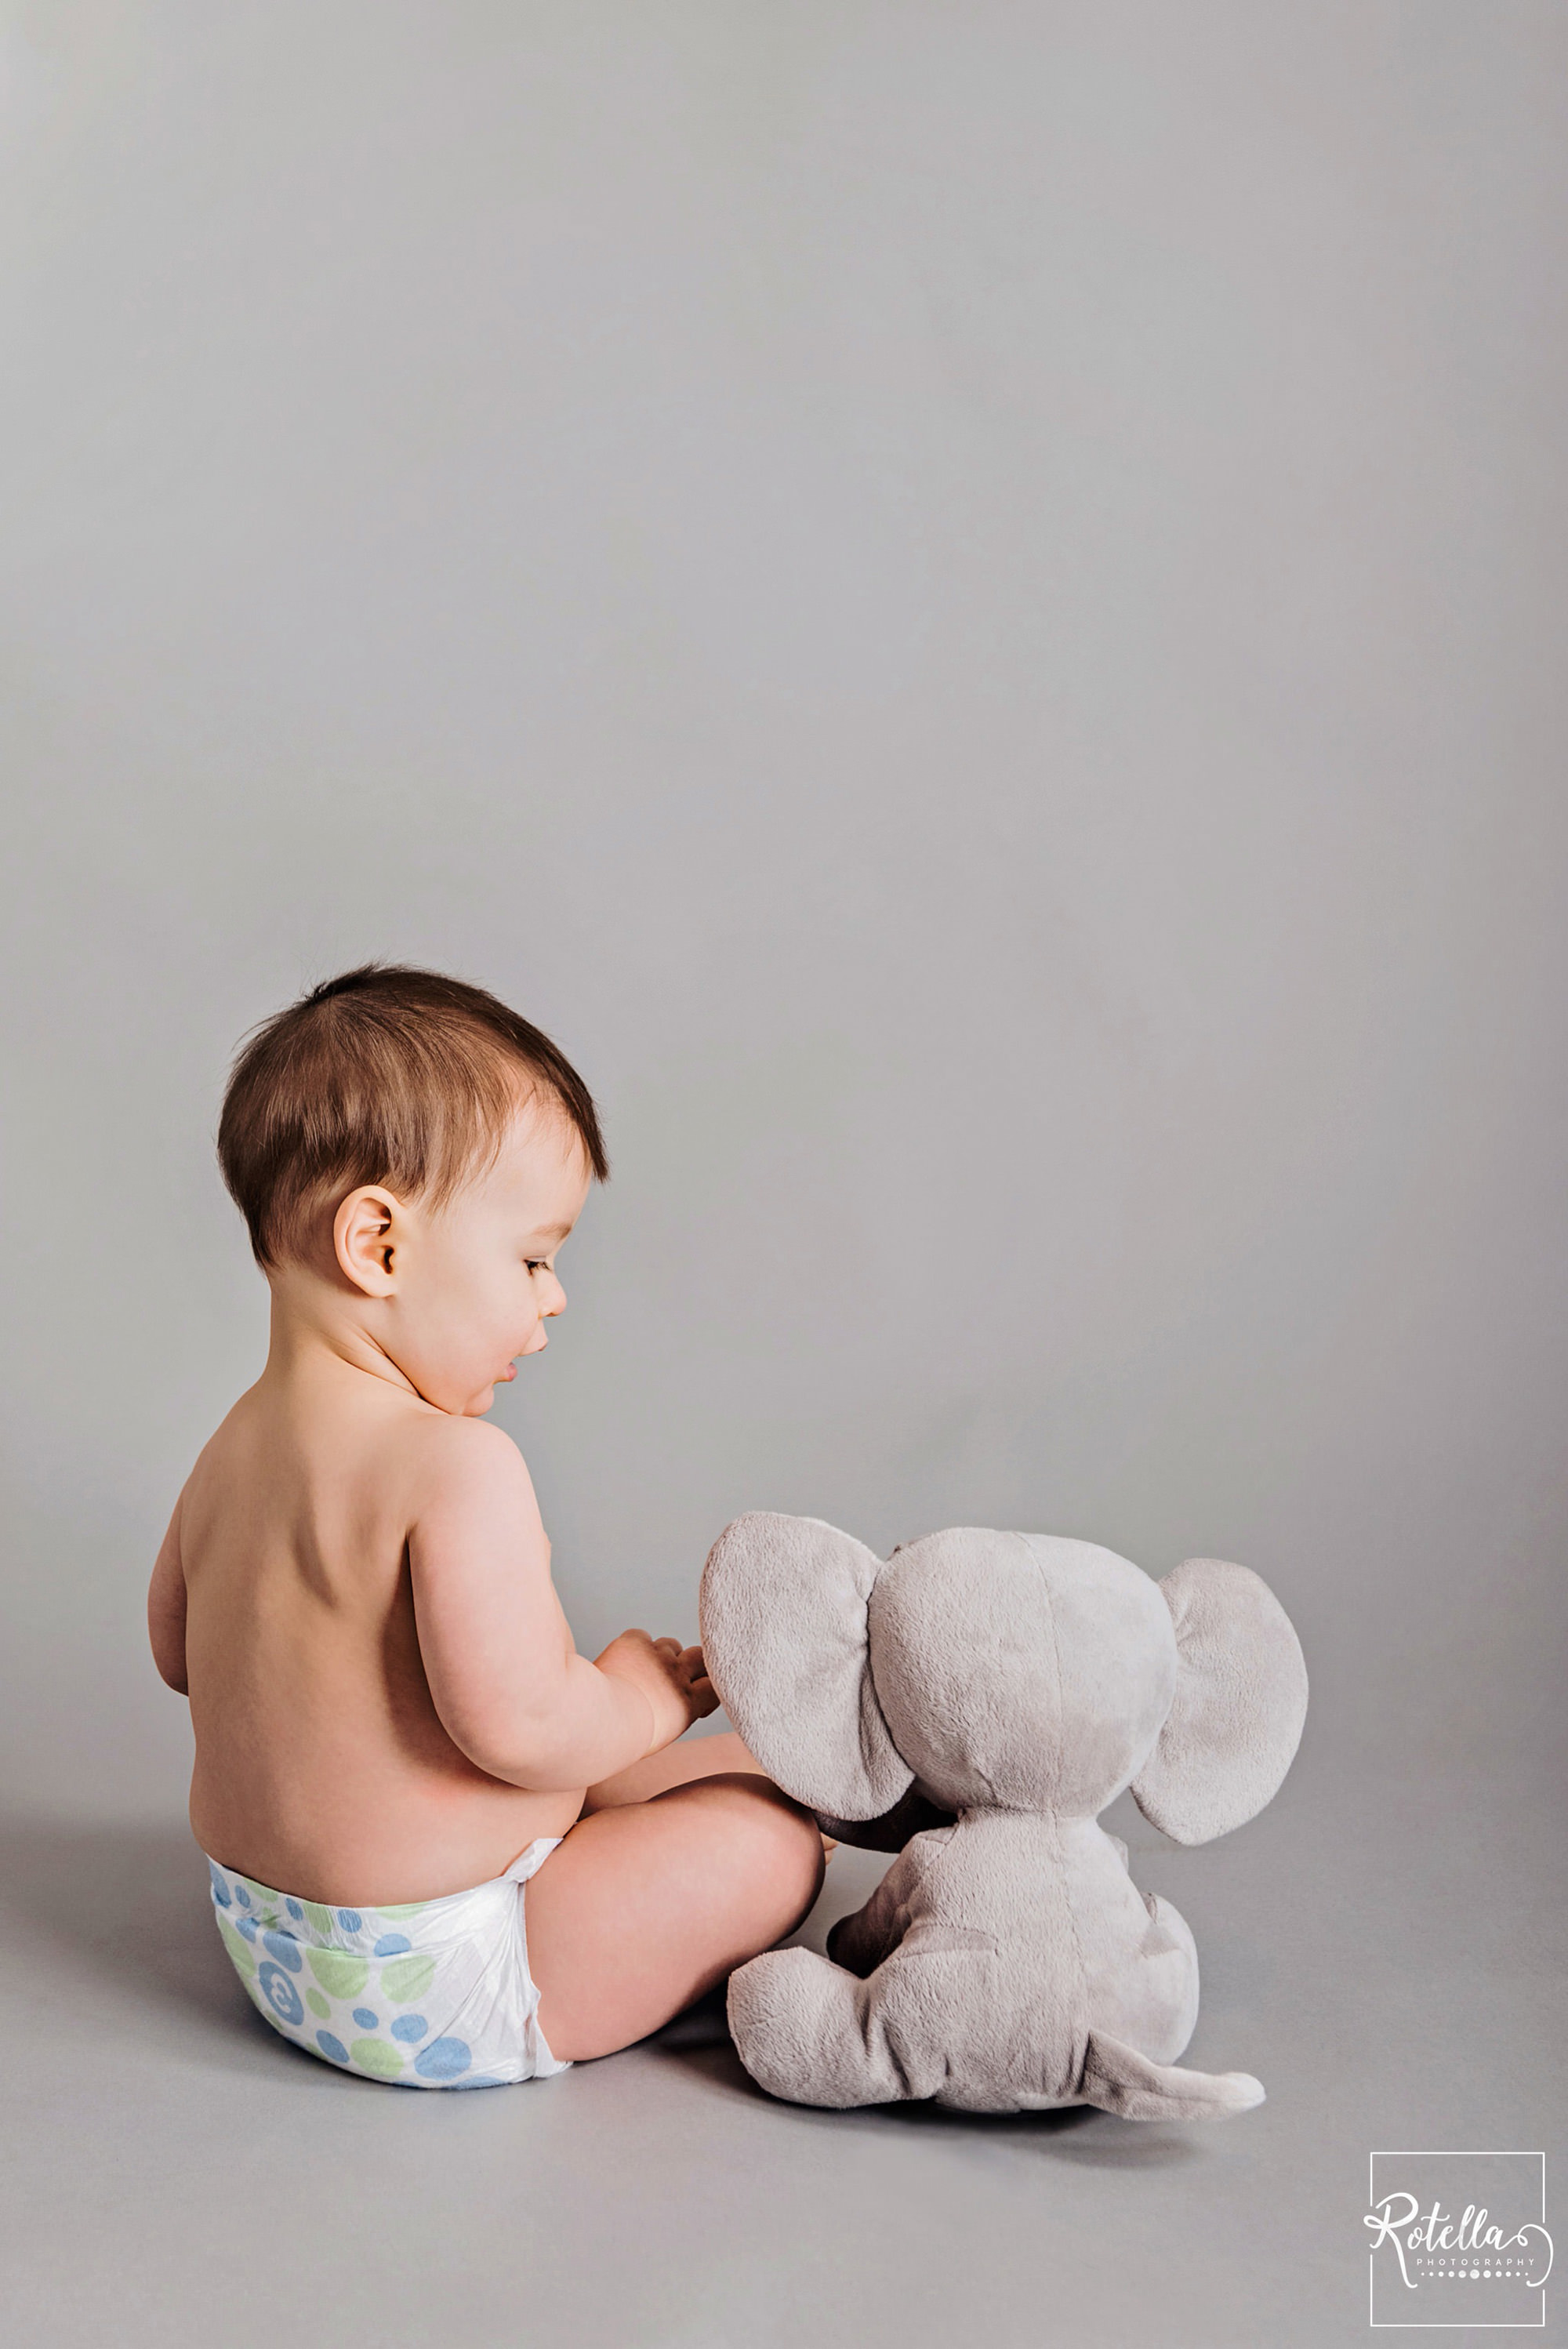 Rotella Photography - milestone photography baby playing with stuffed elephant in studio on grey backdrop